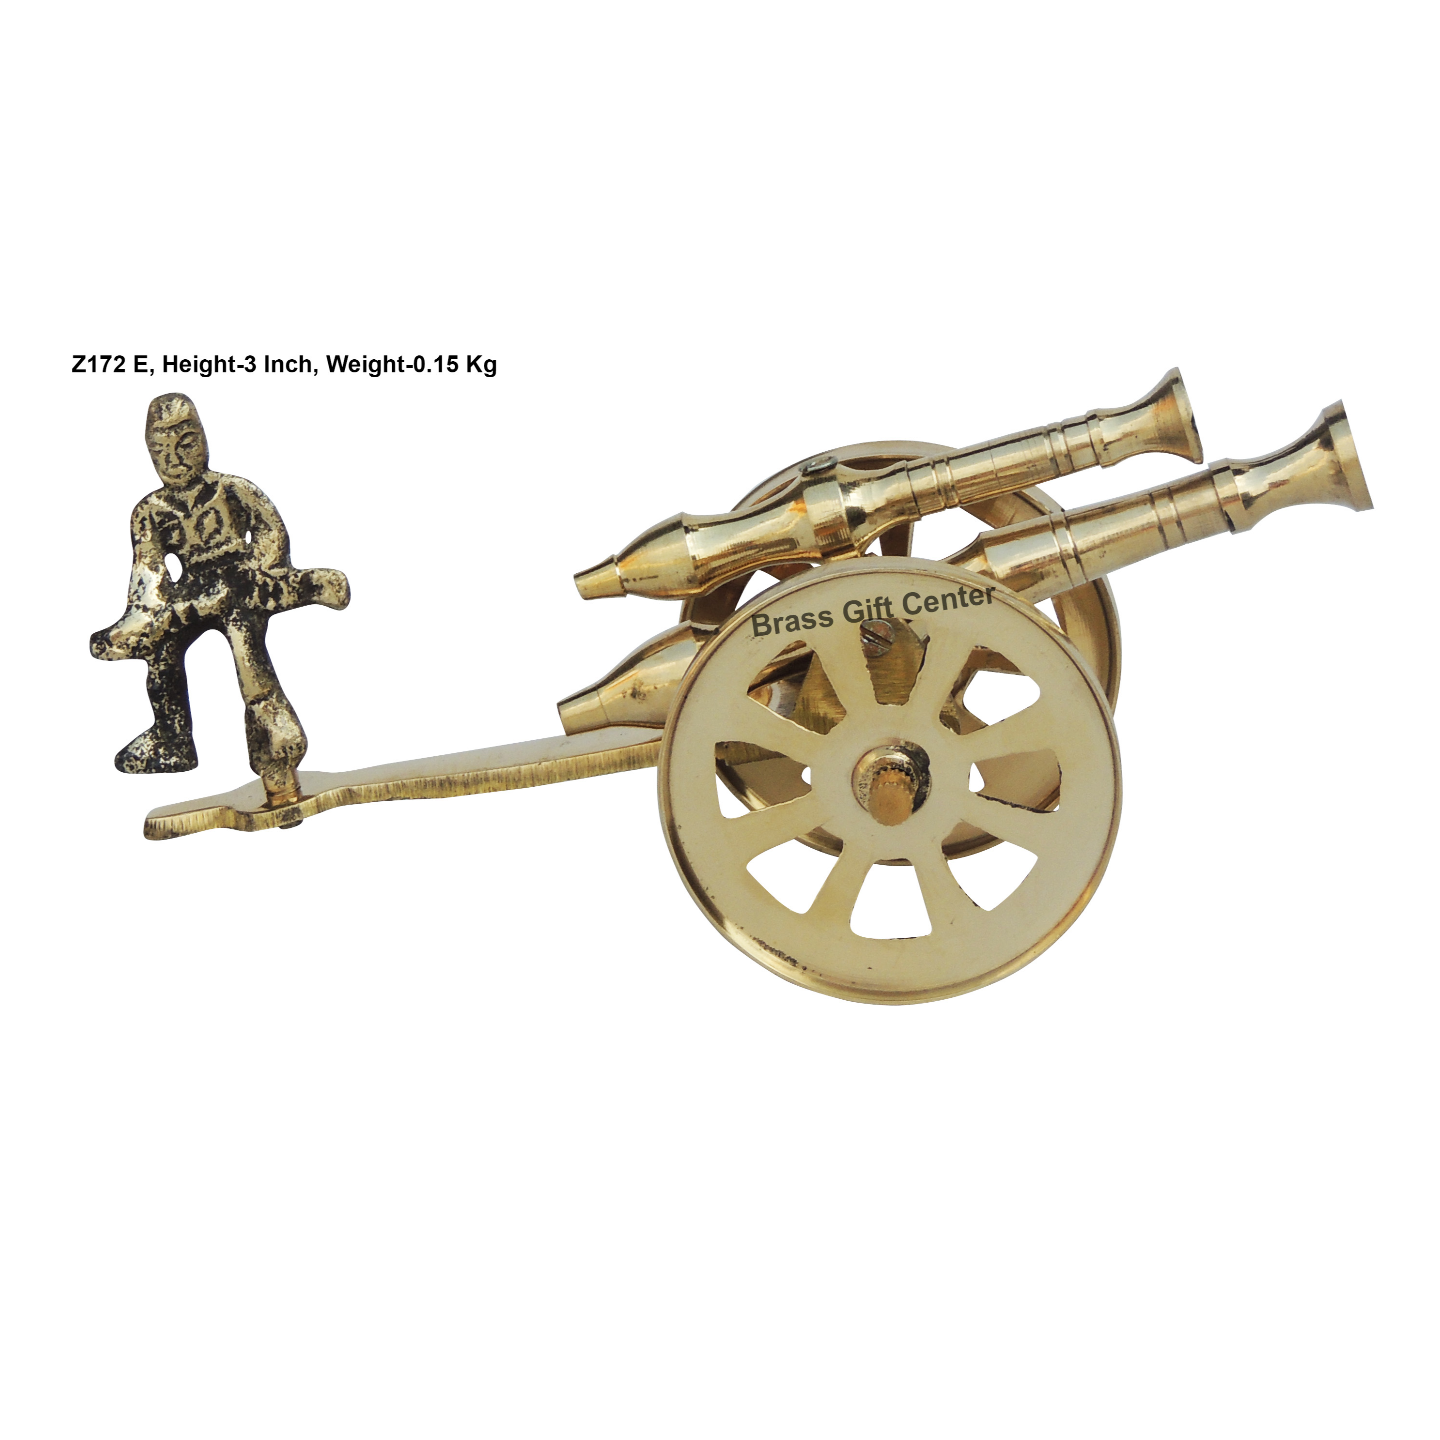 Brass Small Toop Cannon No. 7 - 6.52.33 Inch  Z172 E